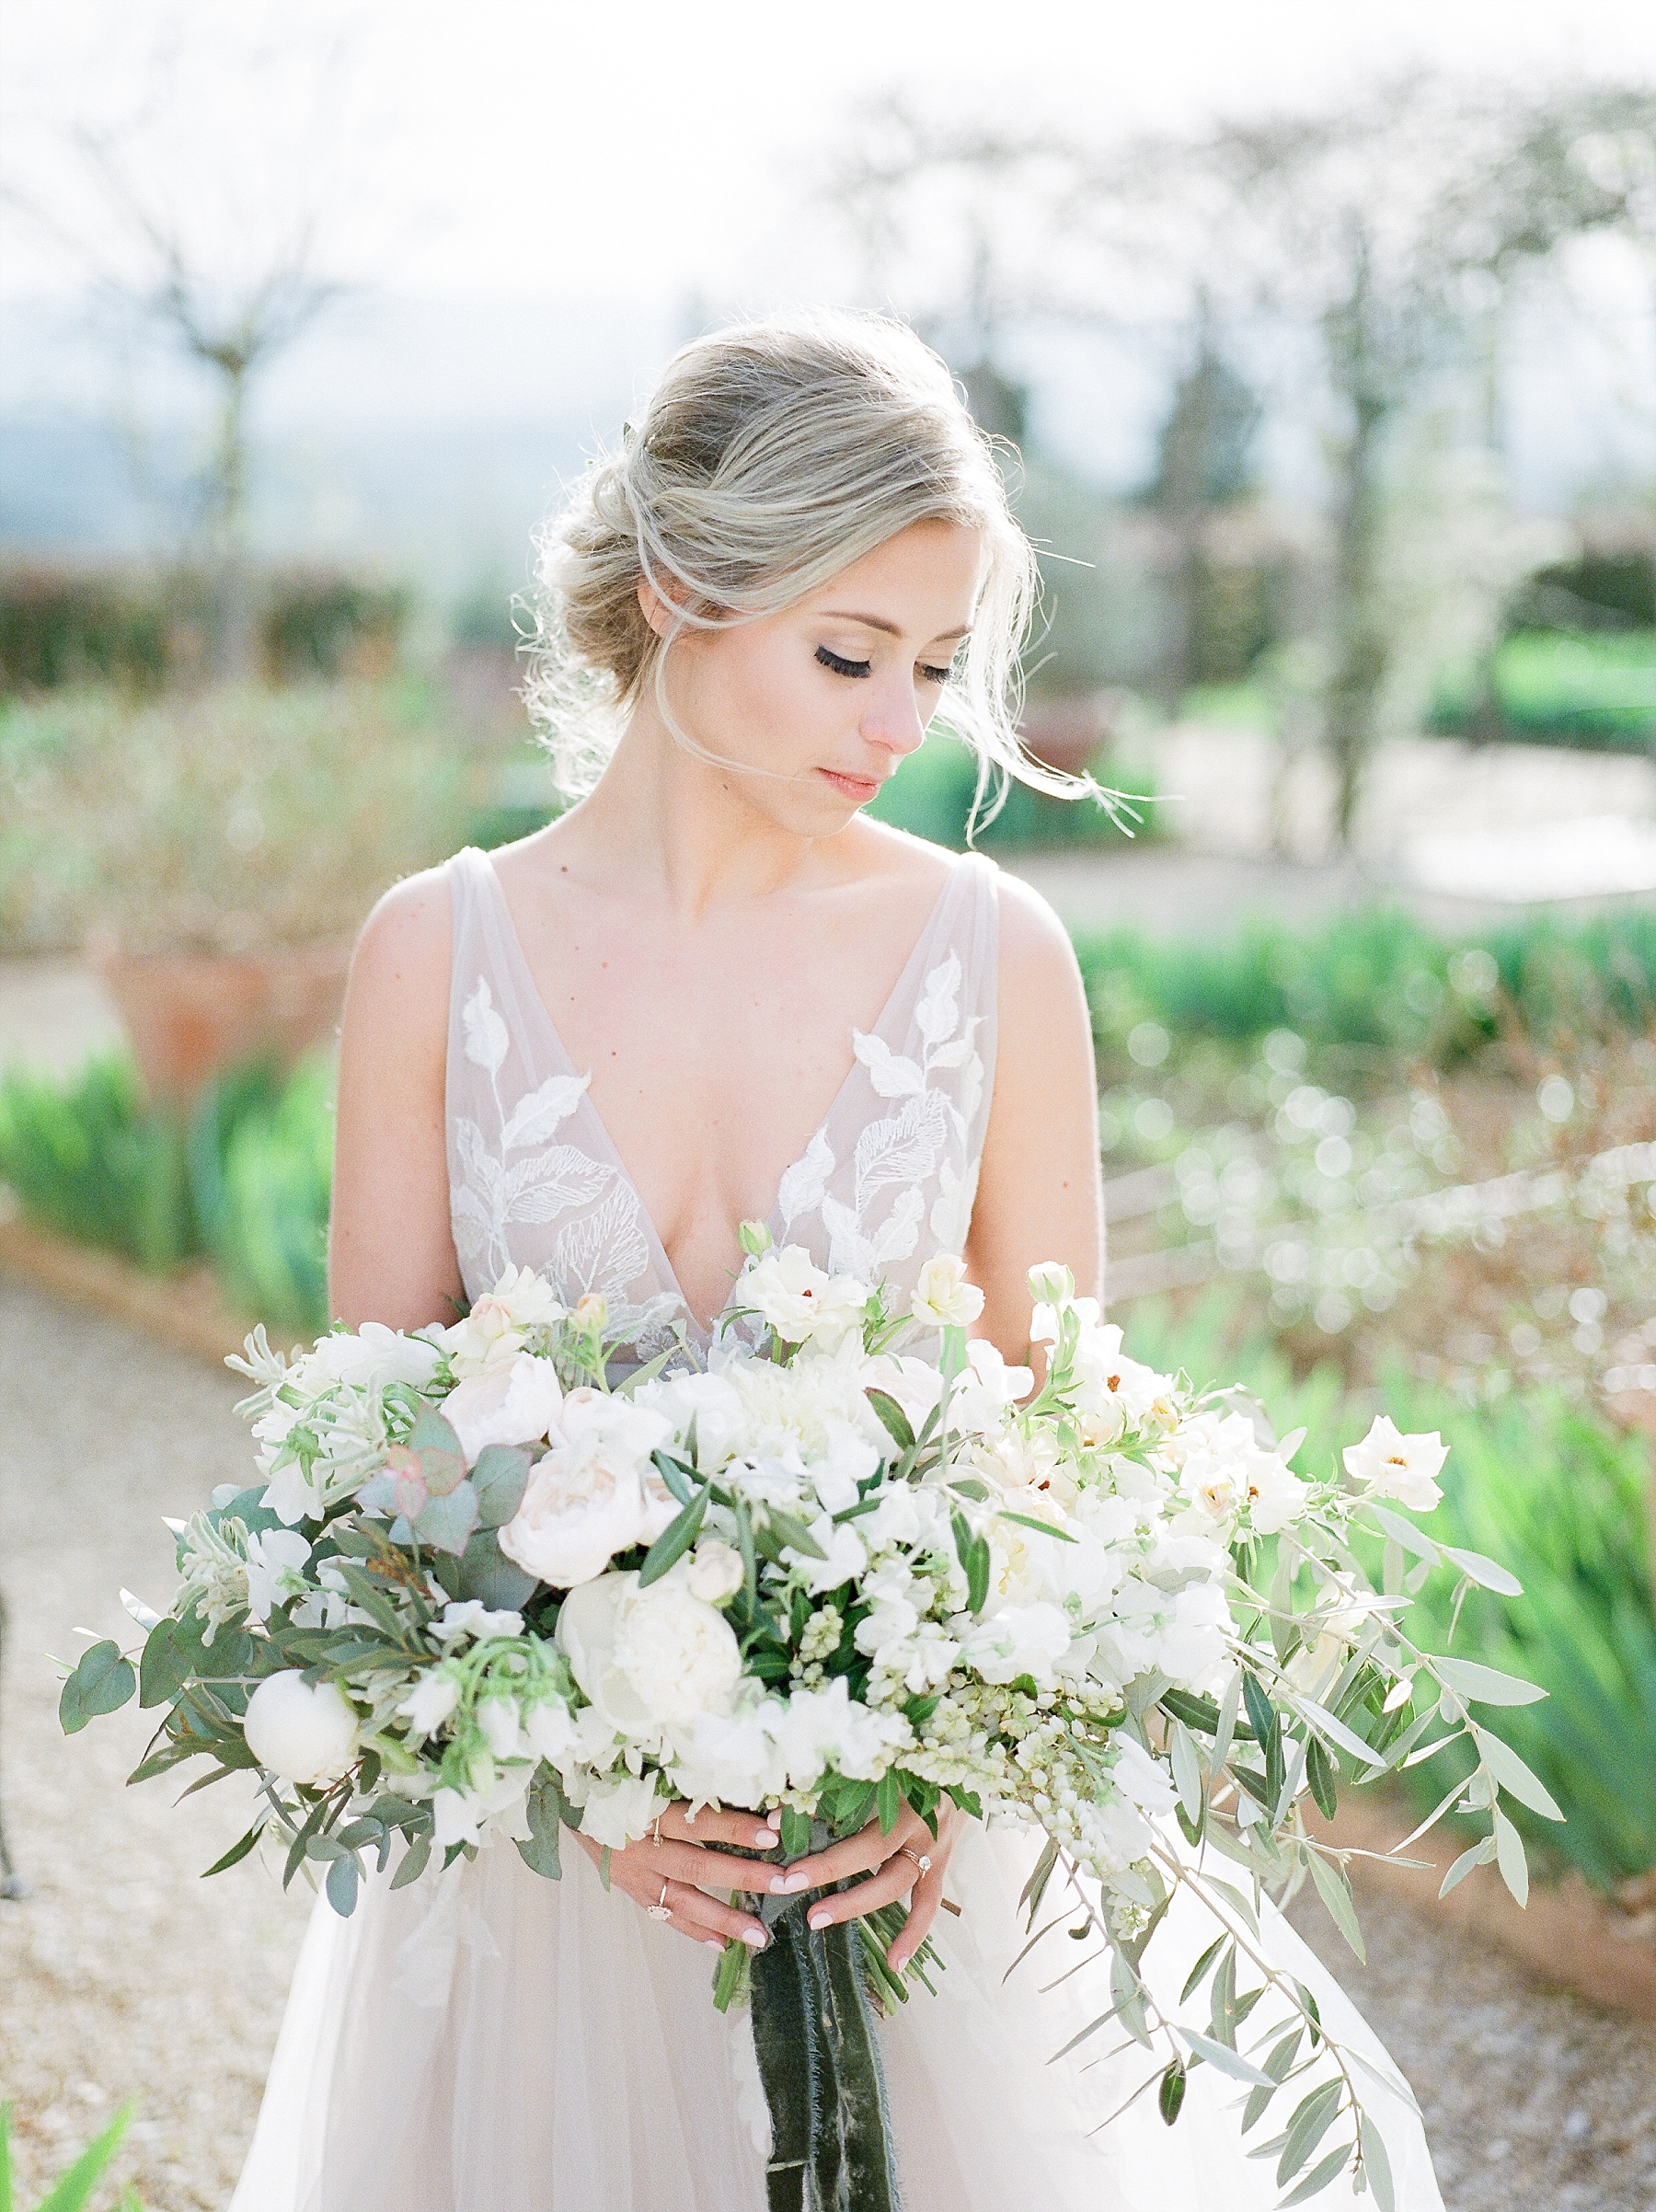 All White Destination Wedding in the Hills of Tuscany Italy at Estate Borgo Petrognano by Kelsi Kliethermes Photography_0044.jpg